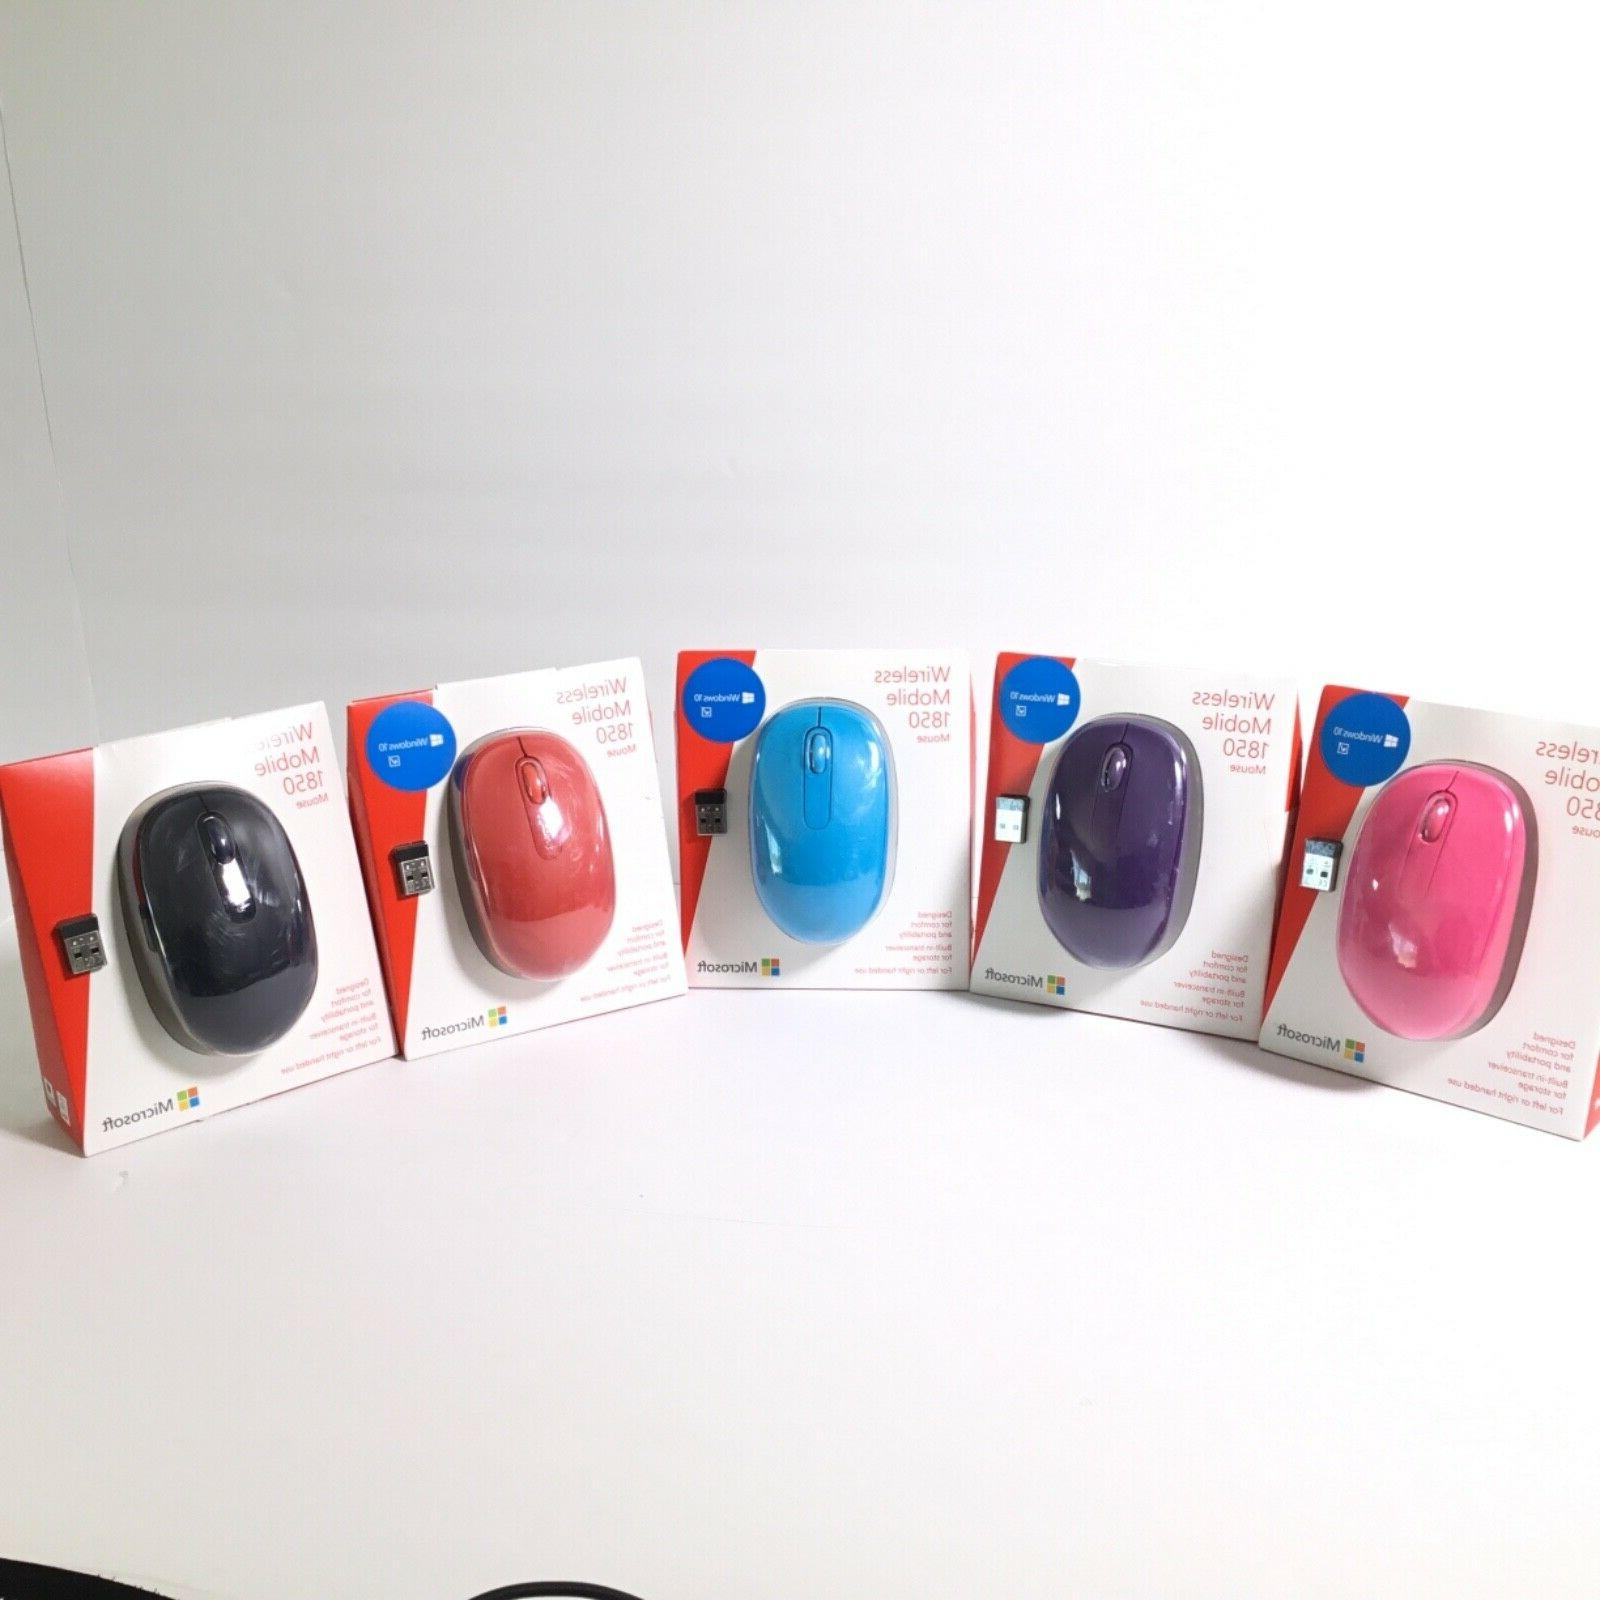 Microsoft Wireless Mobile1850 Cordless Mice For PC